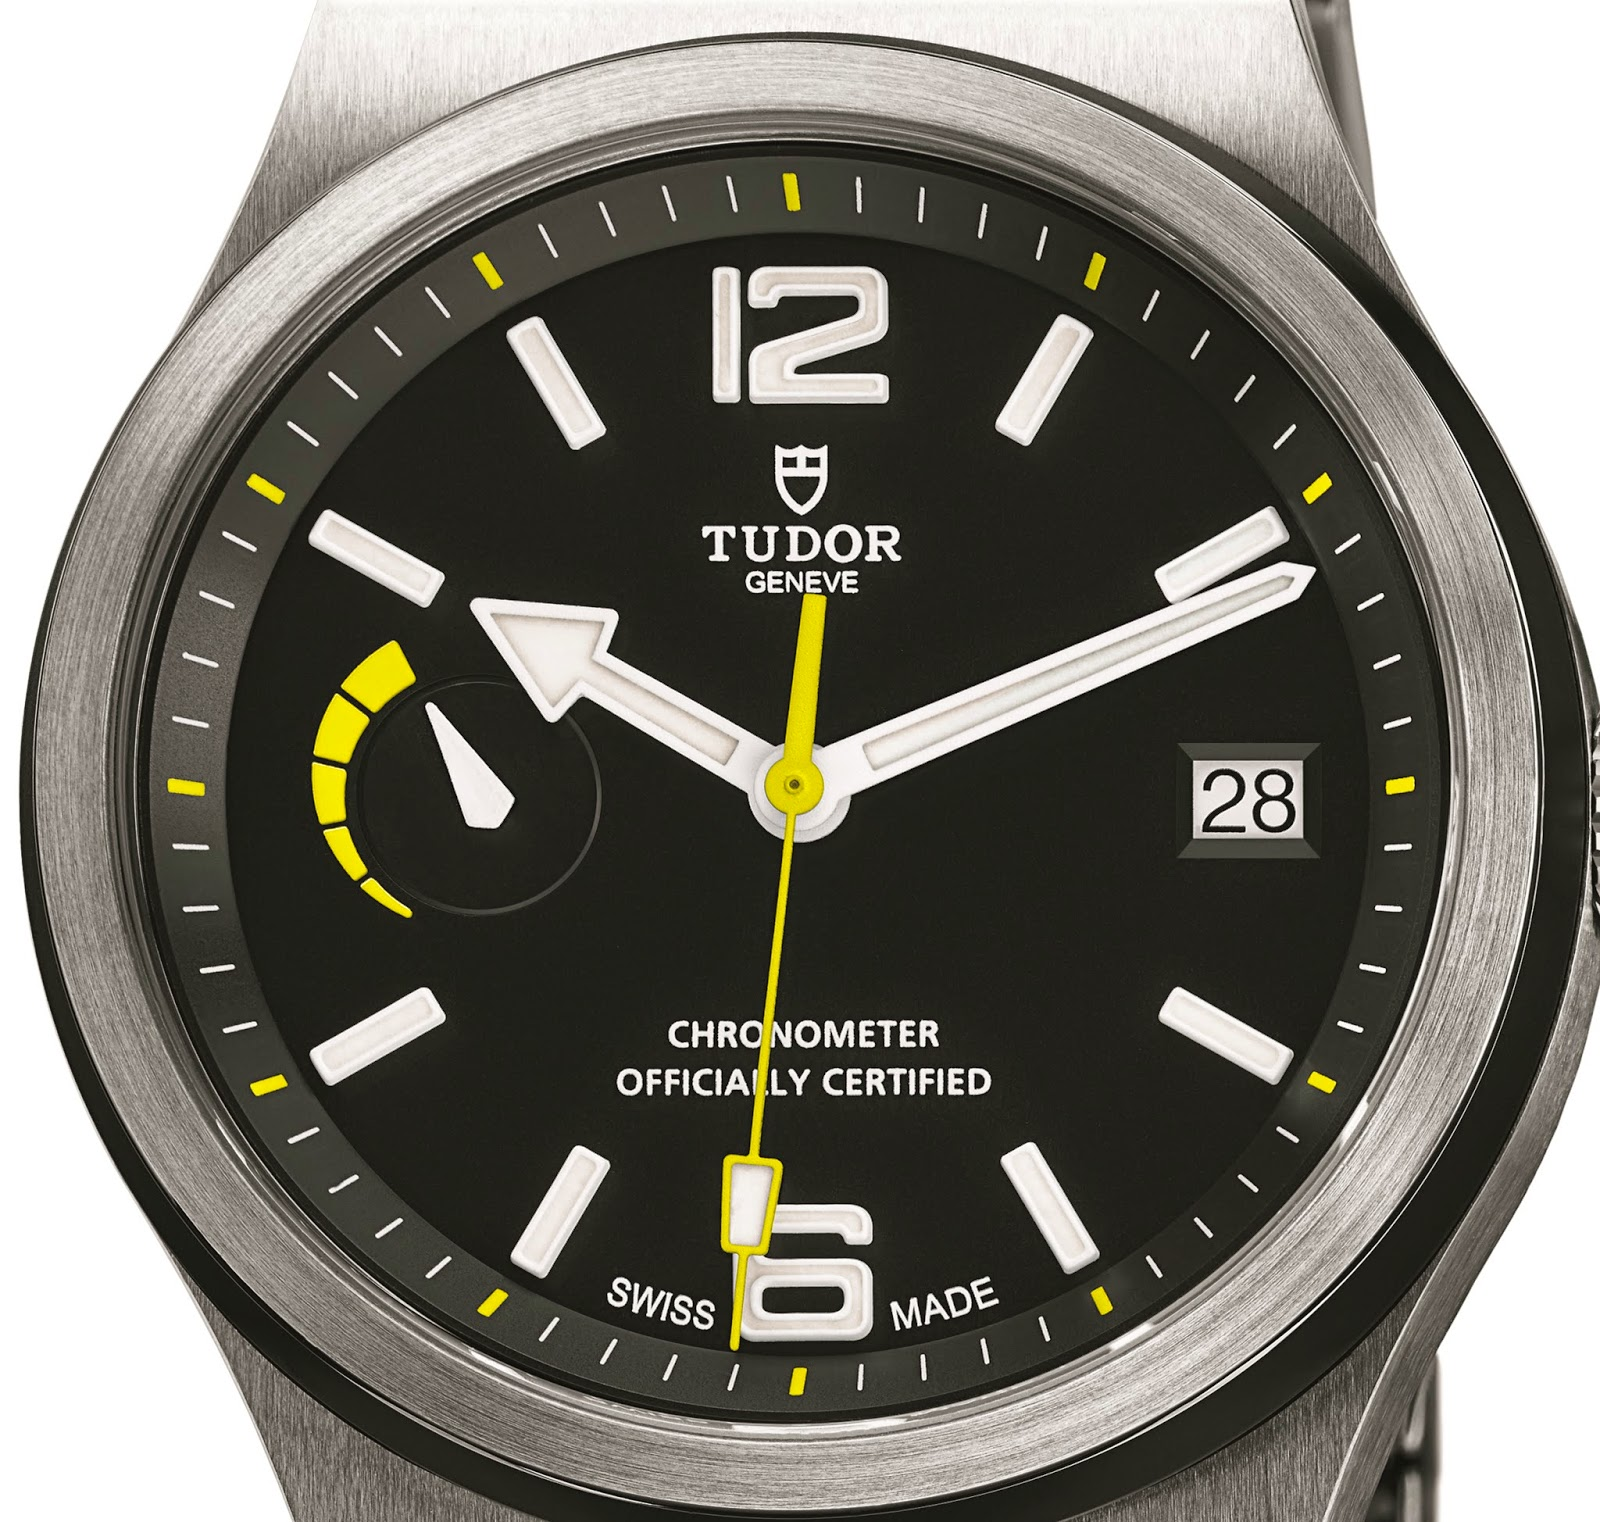 Tudor - North Flag with in-house movement